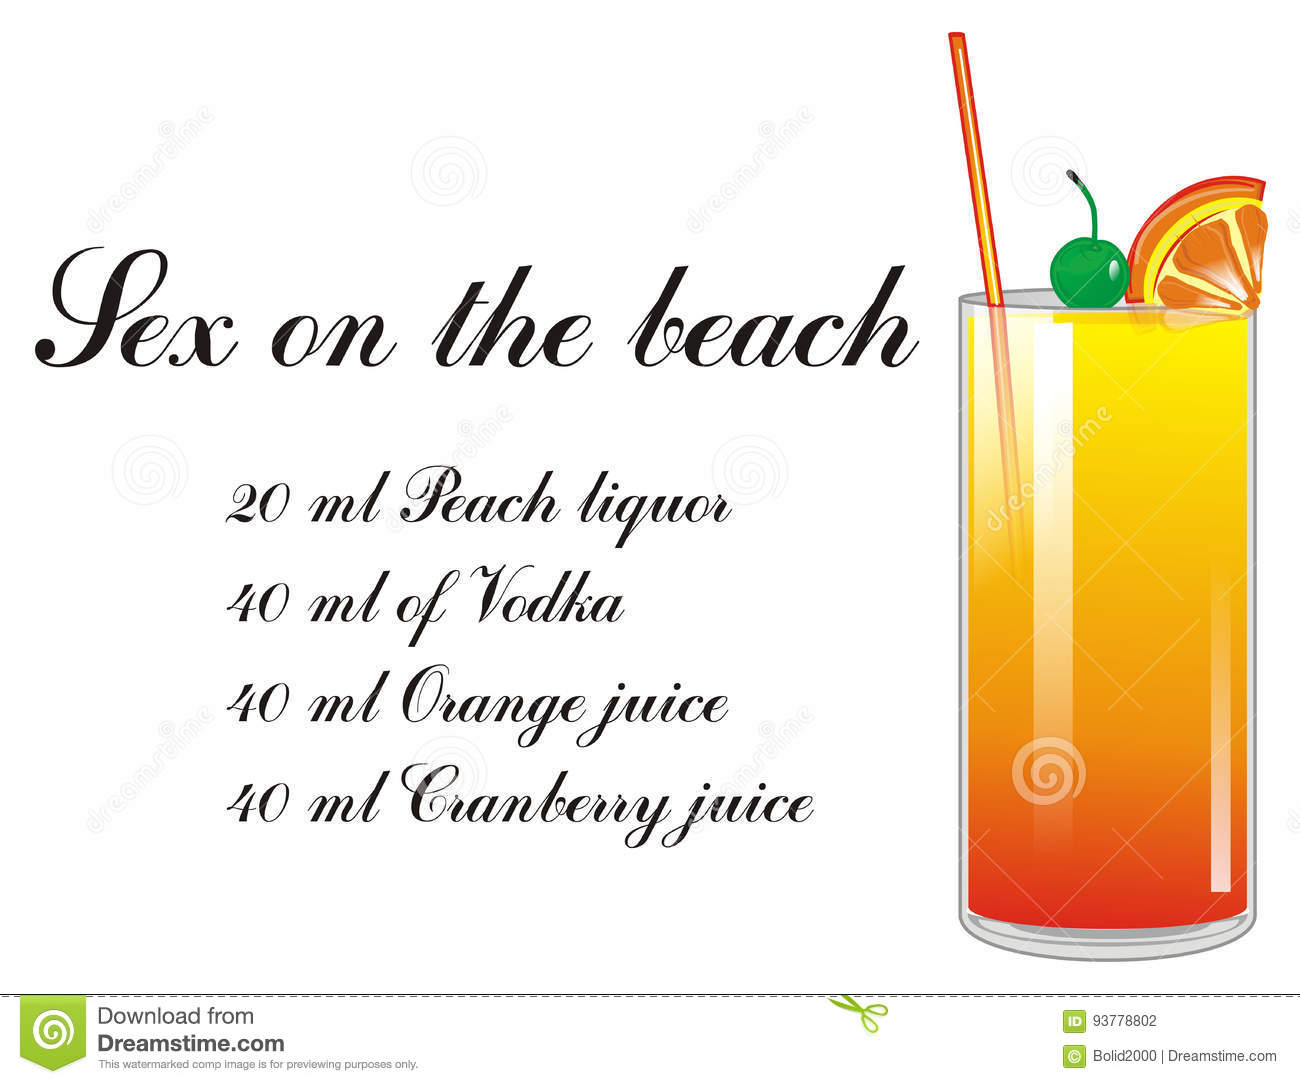 Whats in sex on the beach drink